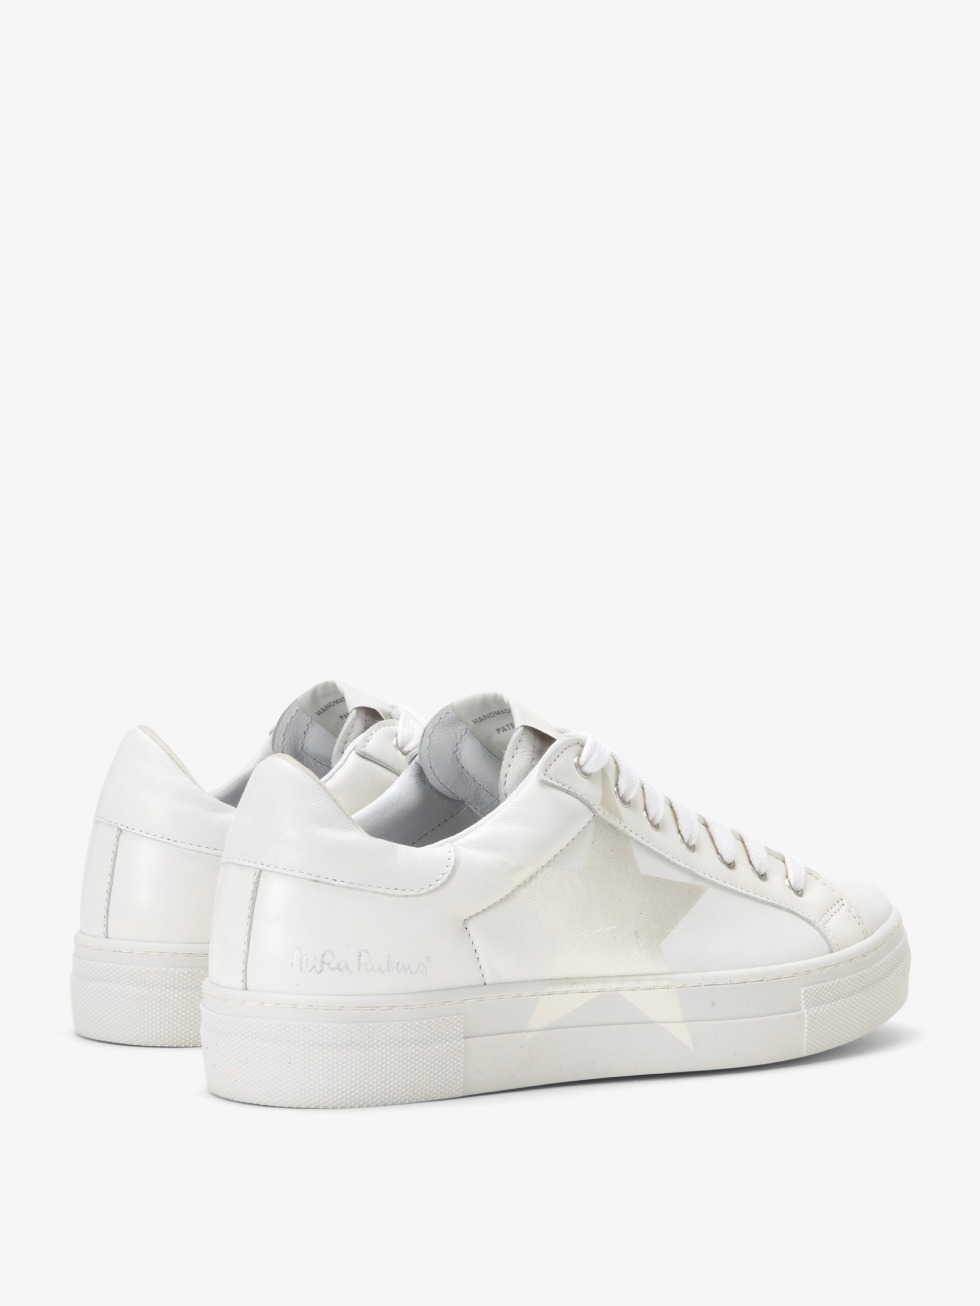 Martini White Sneakers - Mother of Pearl Star